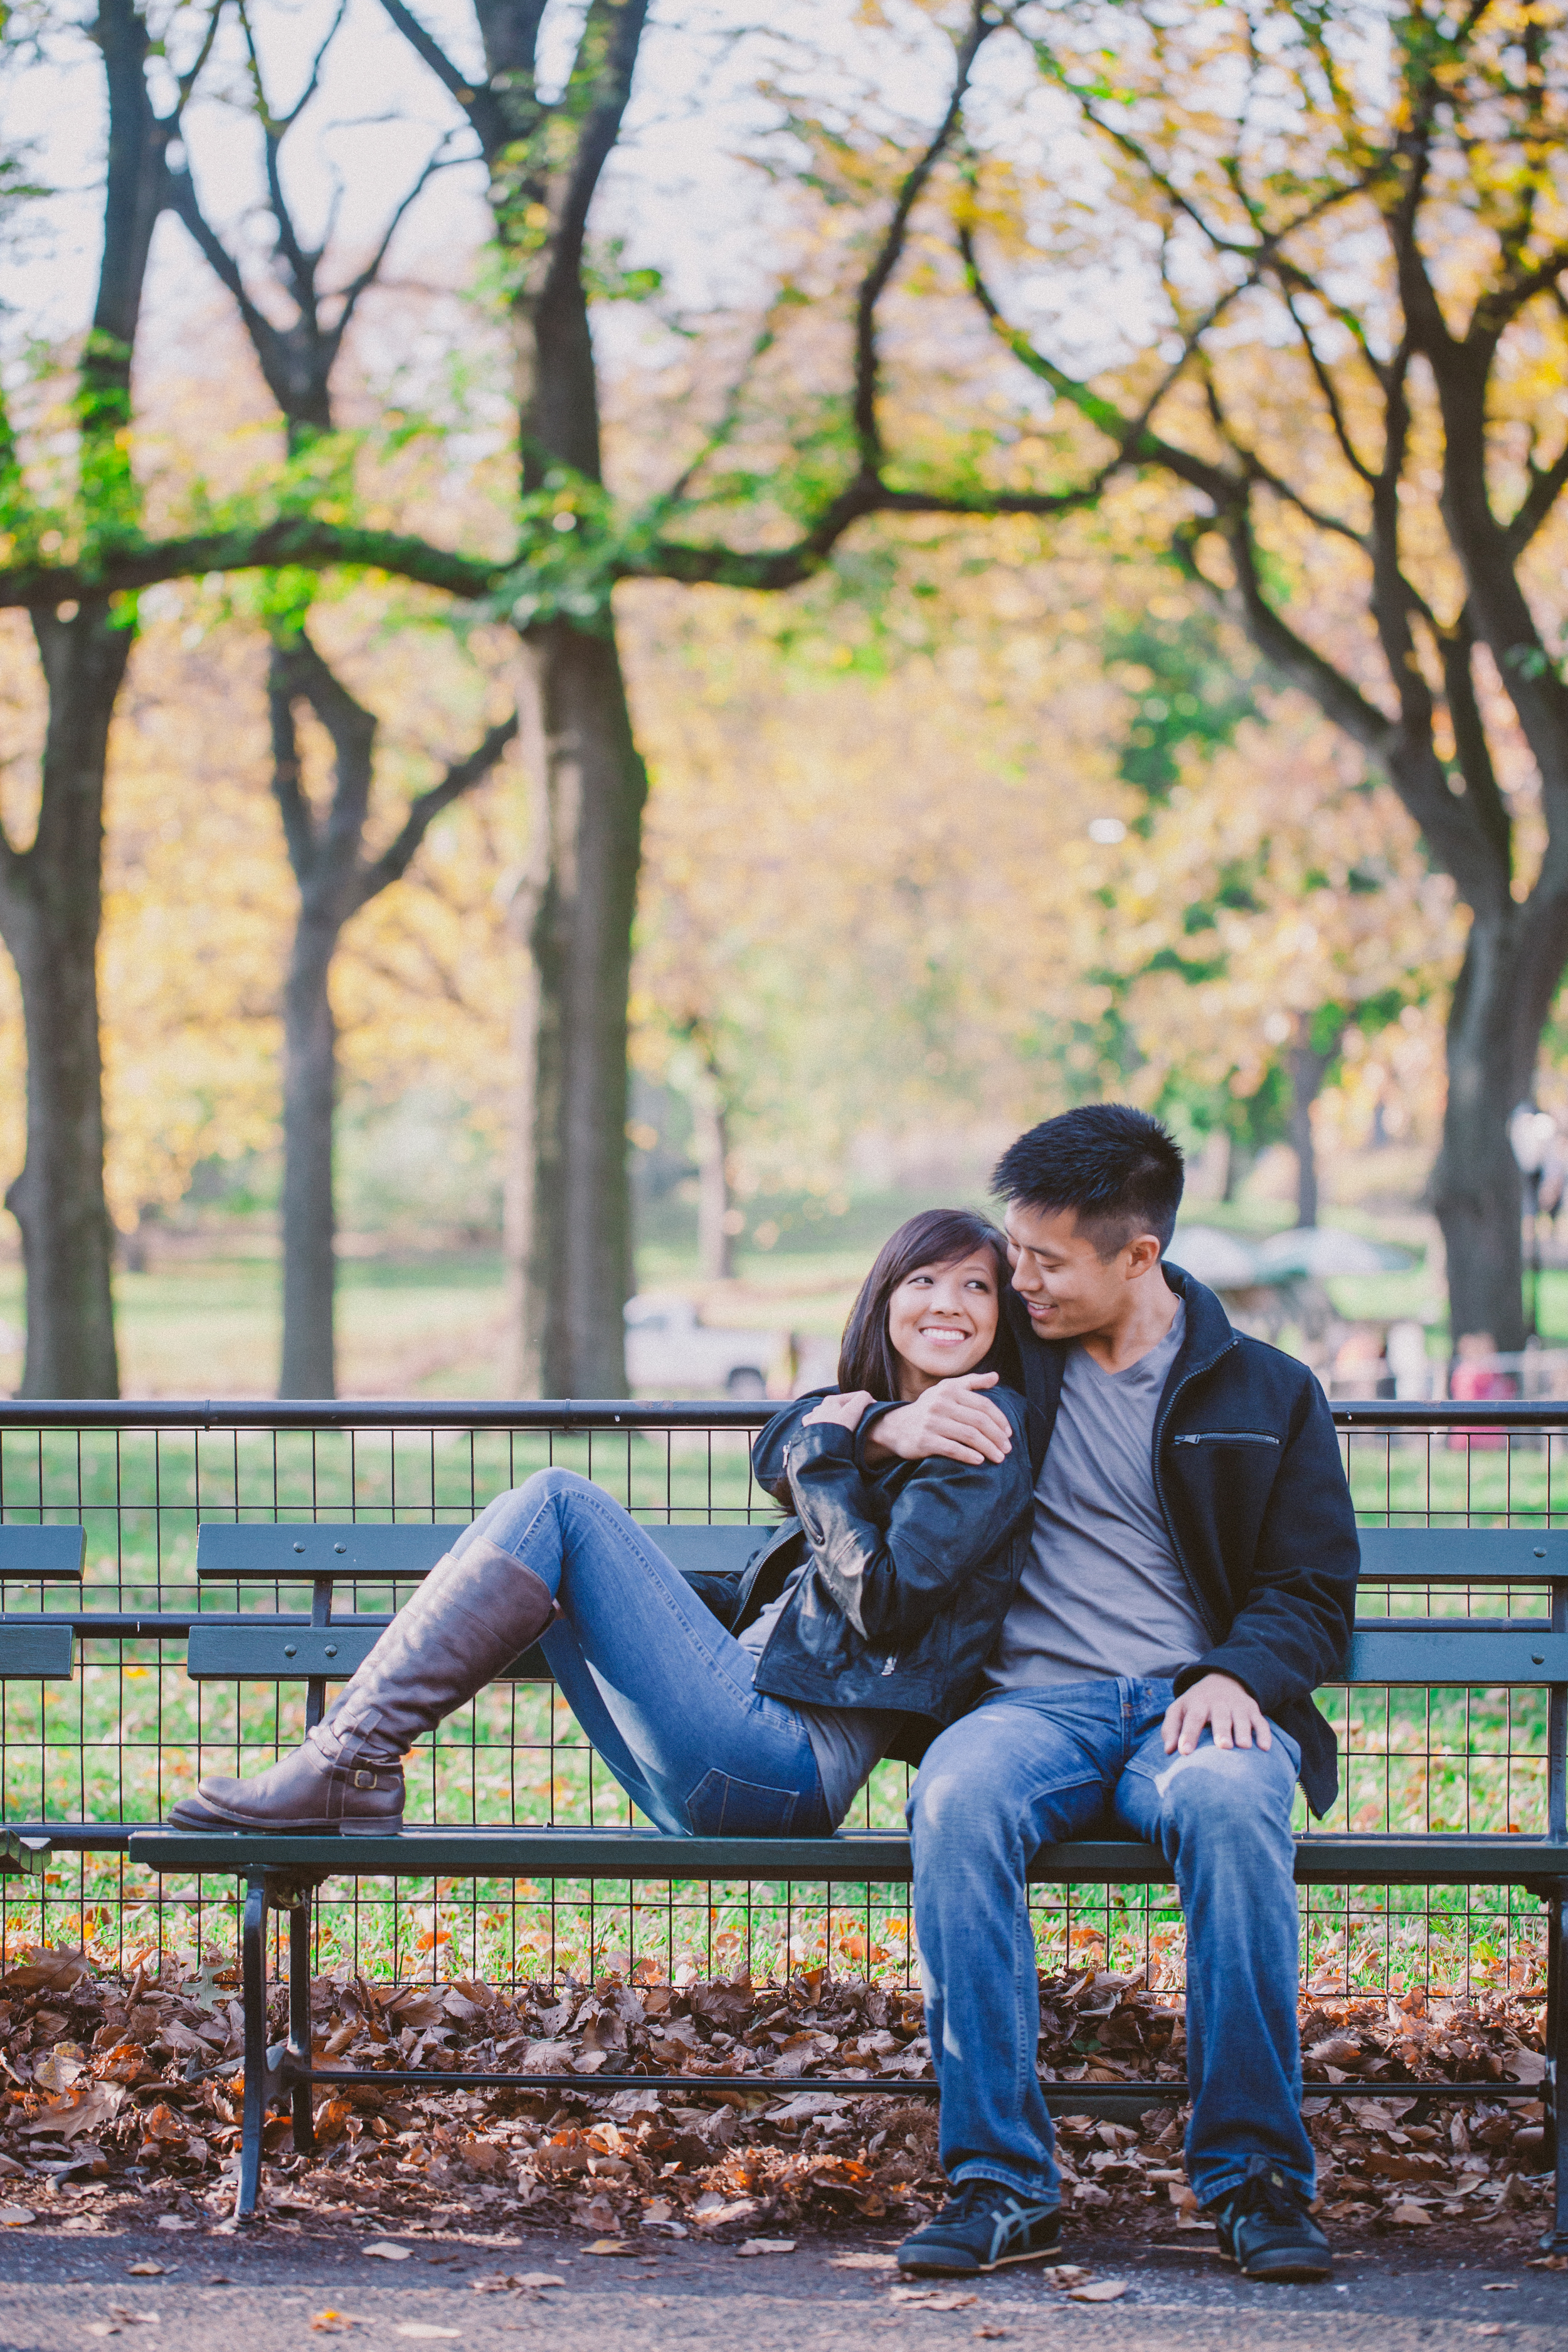 engagement photos in central park during fall season